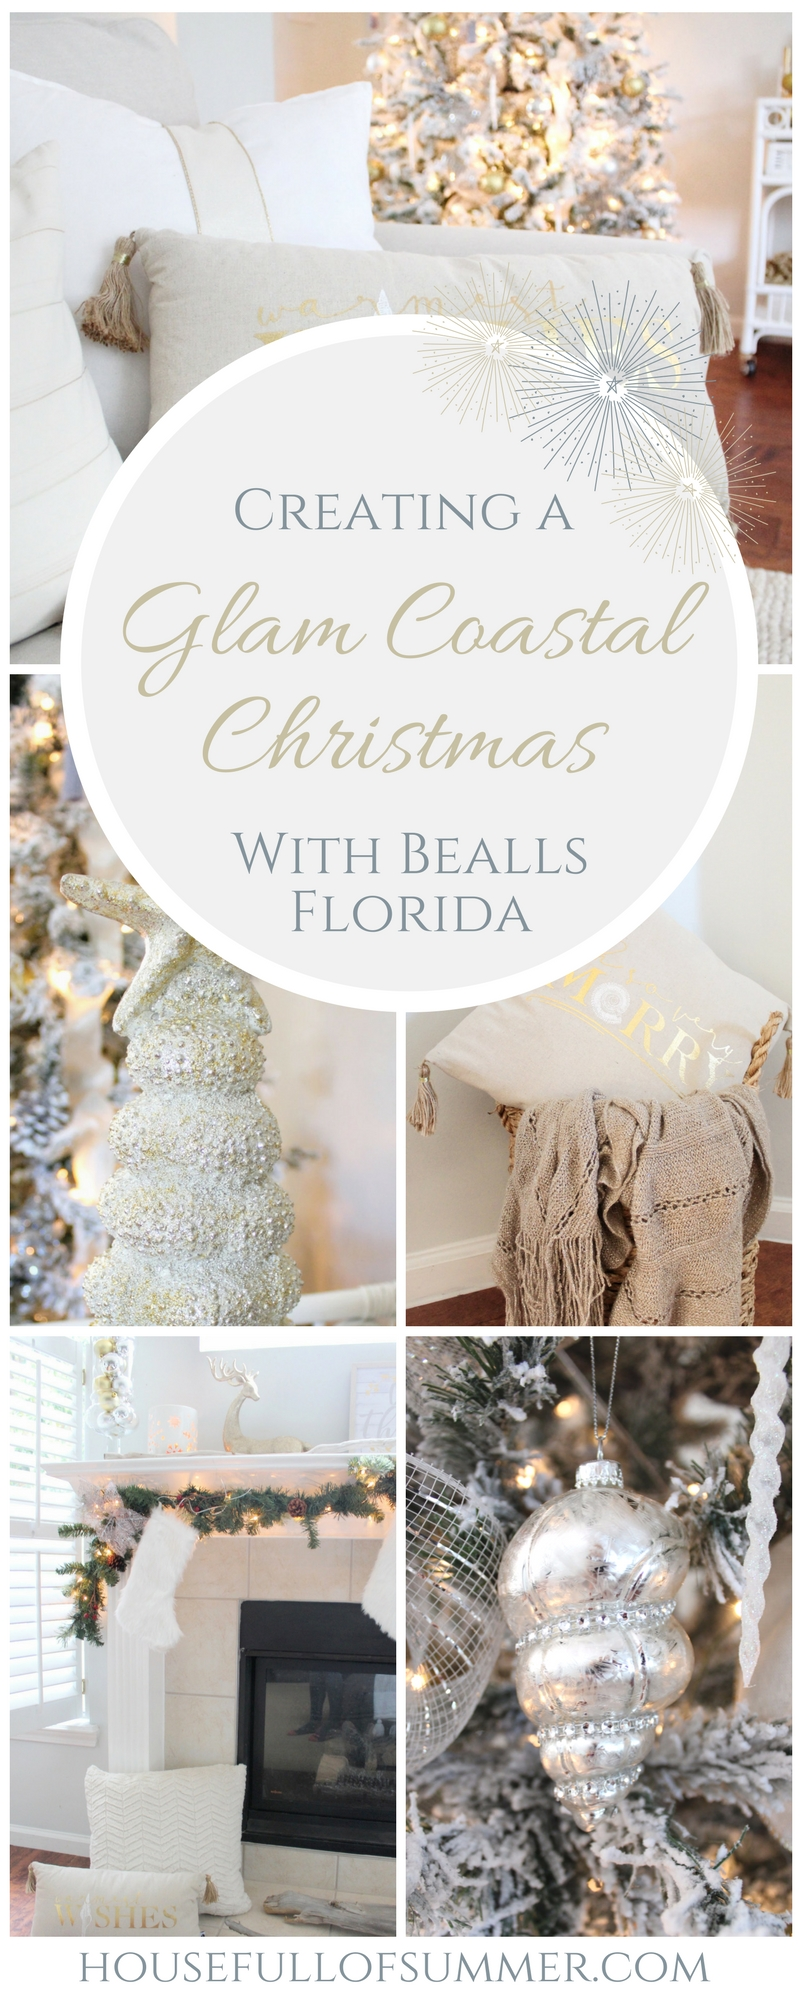 Creating a Glam Coastal Christmas with Bealls Florida | House Full of Summer blog - neutral christmas decor, gold coastal christmas throw pillow, tassel pillow, decorative pillow, florida christmas, beachy holiday decor, silver and gold, neutral interior ideas, beach house christmas